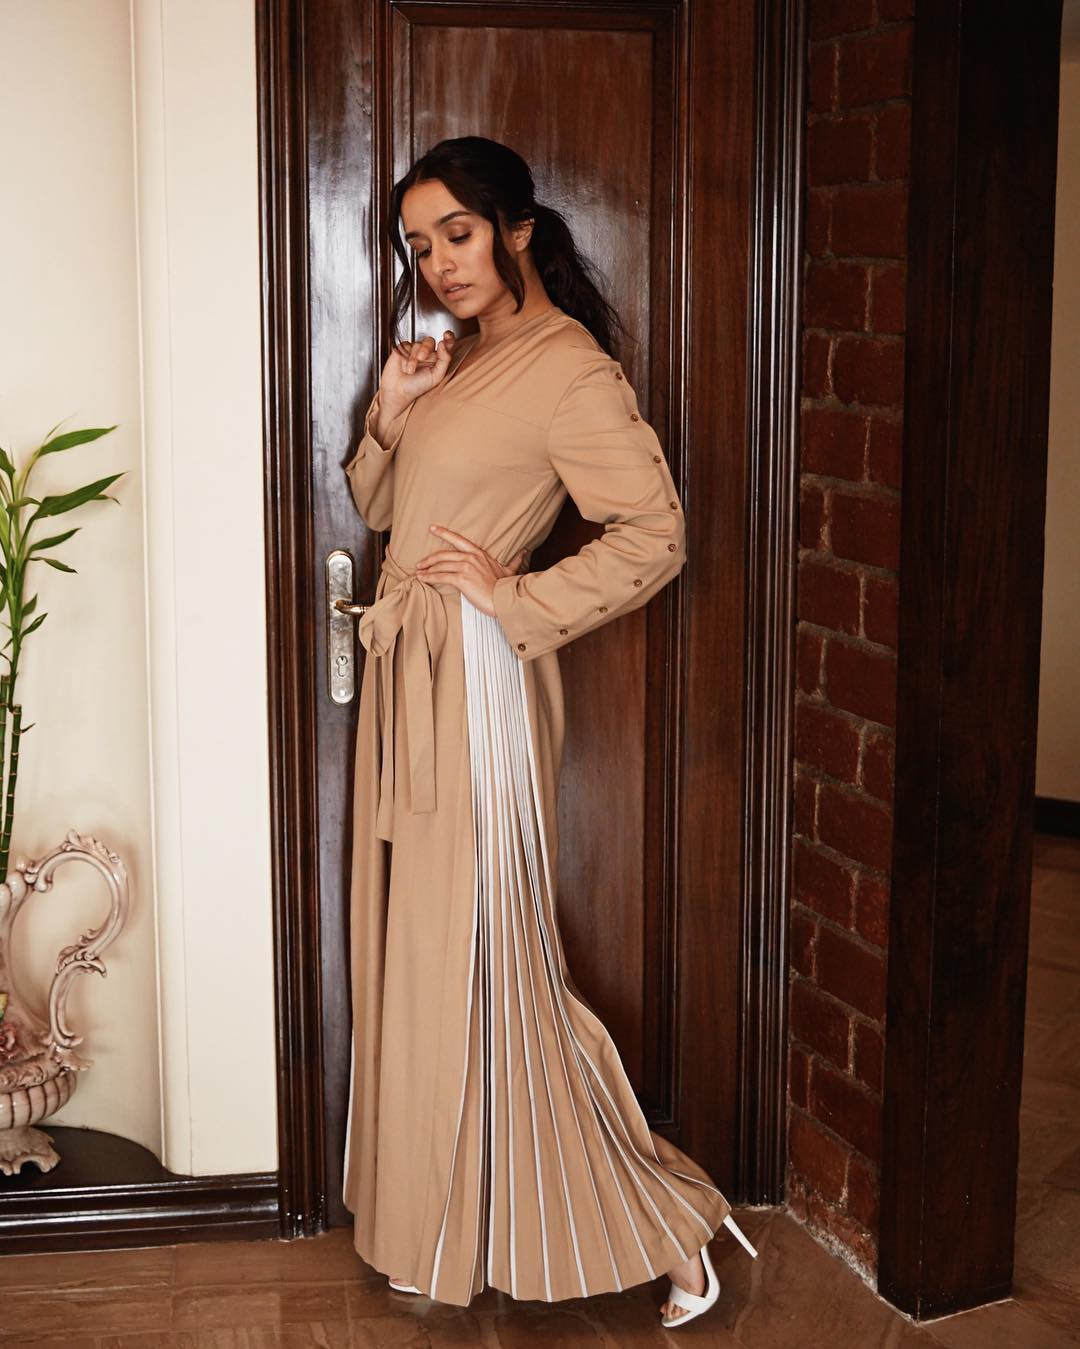 Shraddha Kapoor in Bodice's Maxi Dress